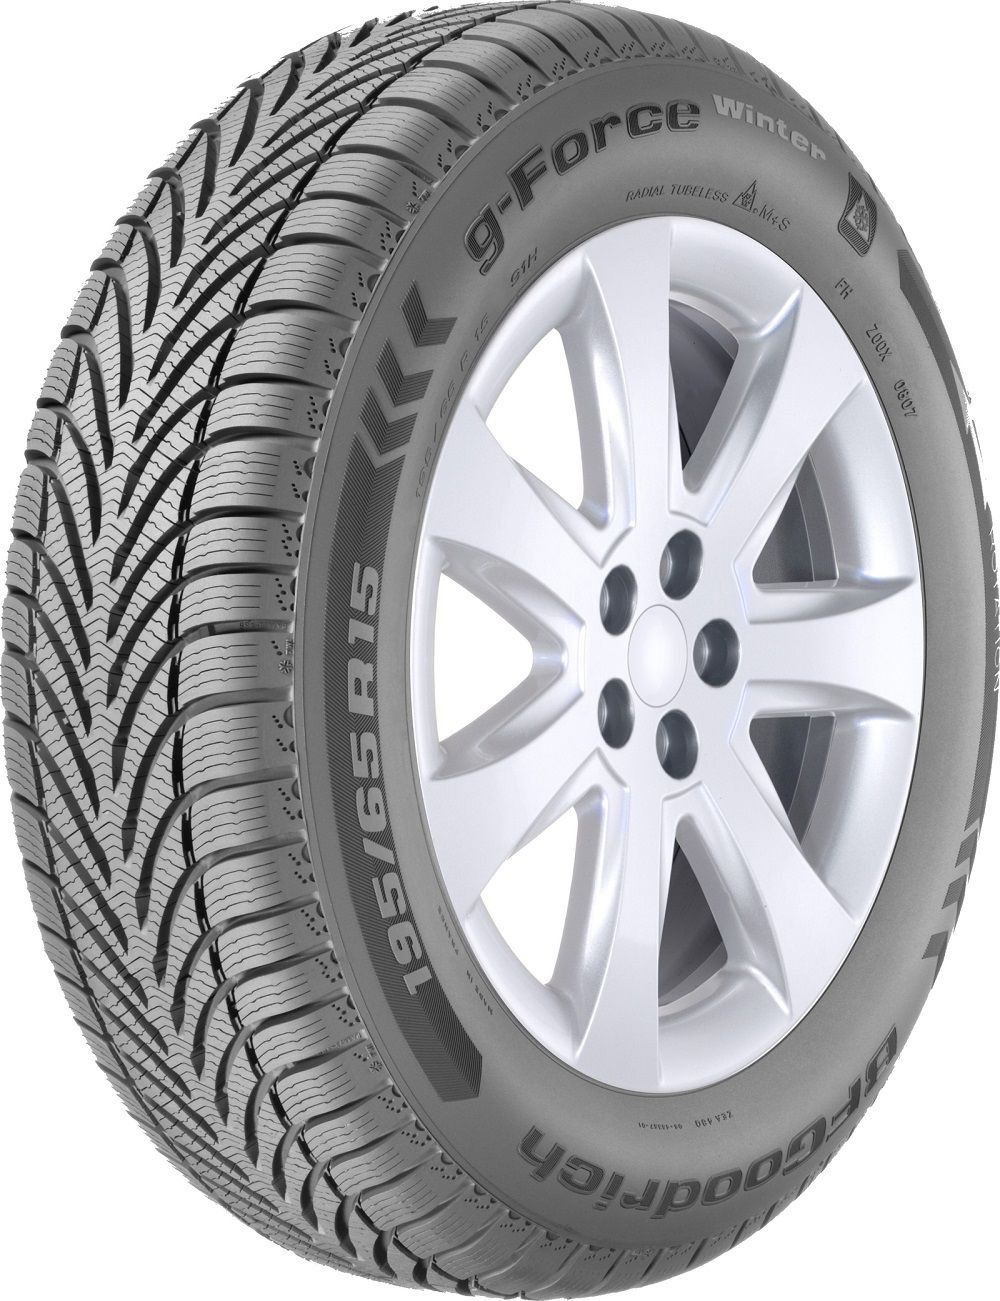 Anvelopa Iarna  G-ForceWinter 175/65R14 82T